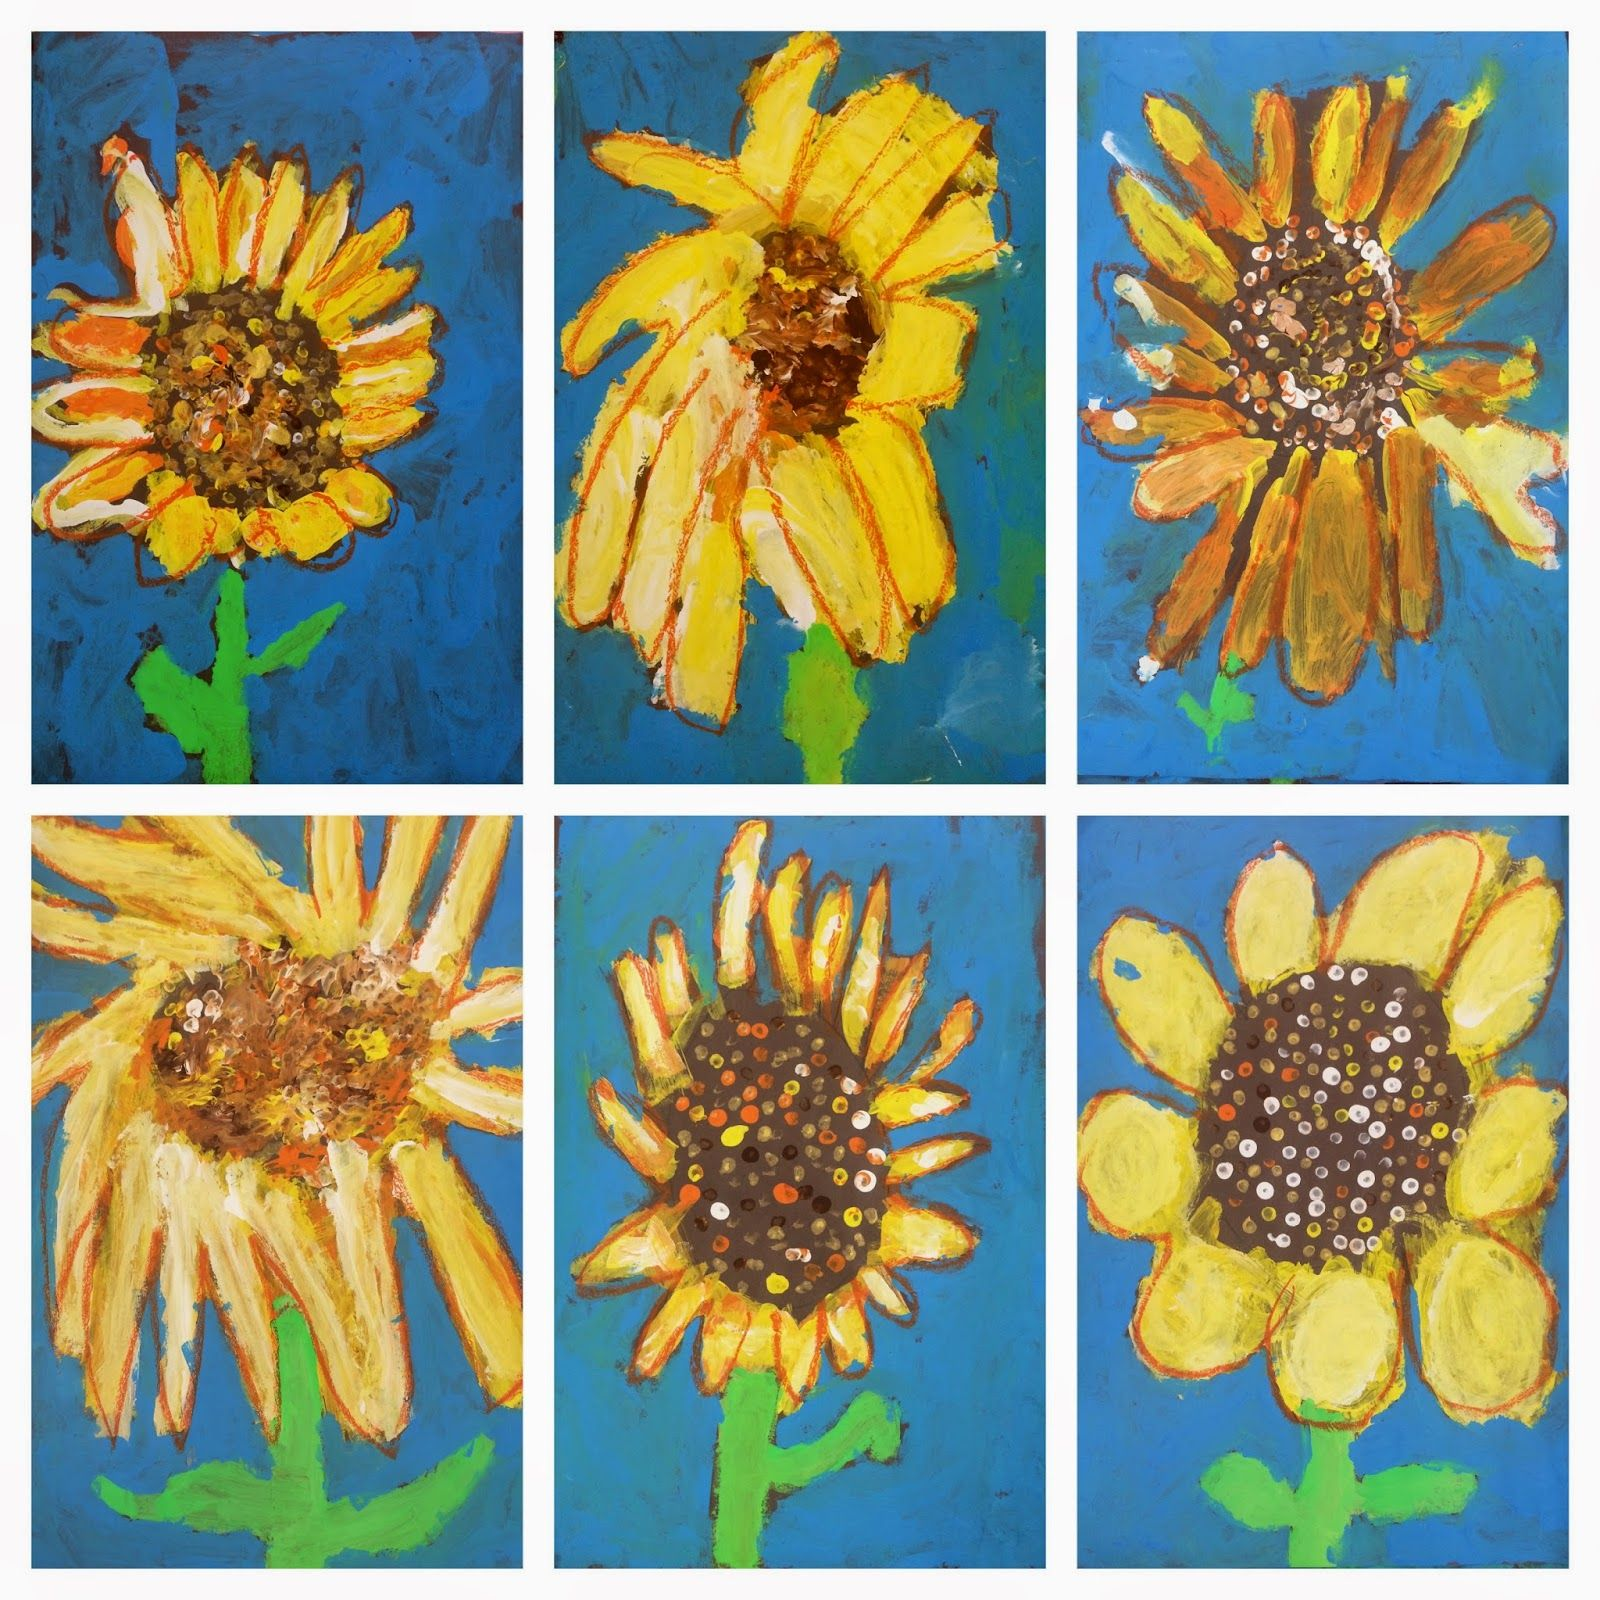 1st Grade Sunflowers IDEA Take A Real Sunflower To Copy